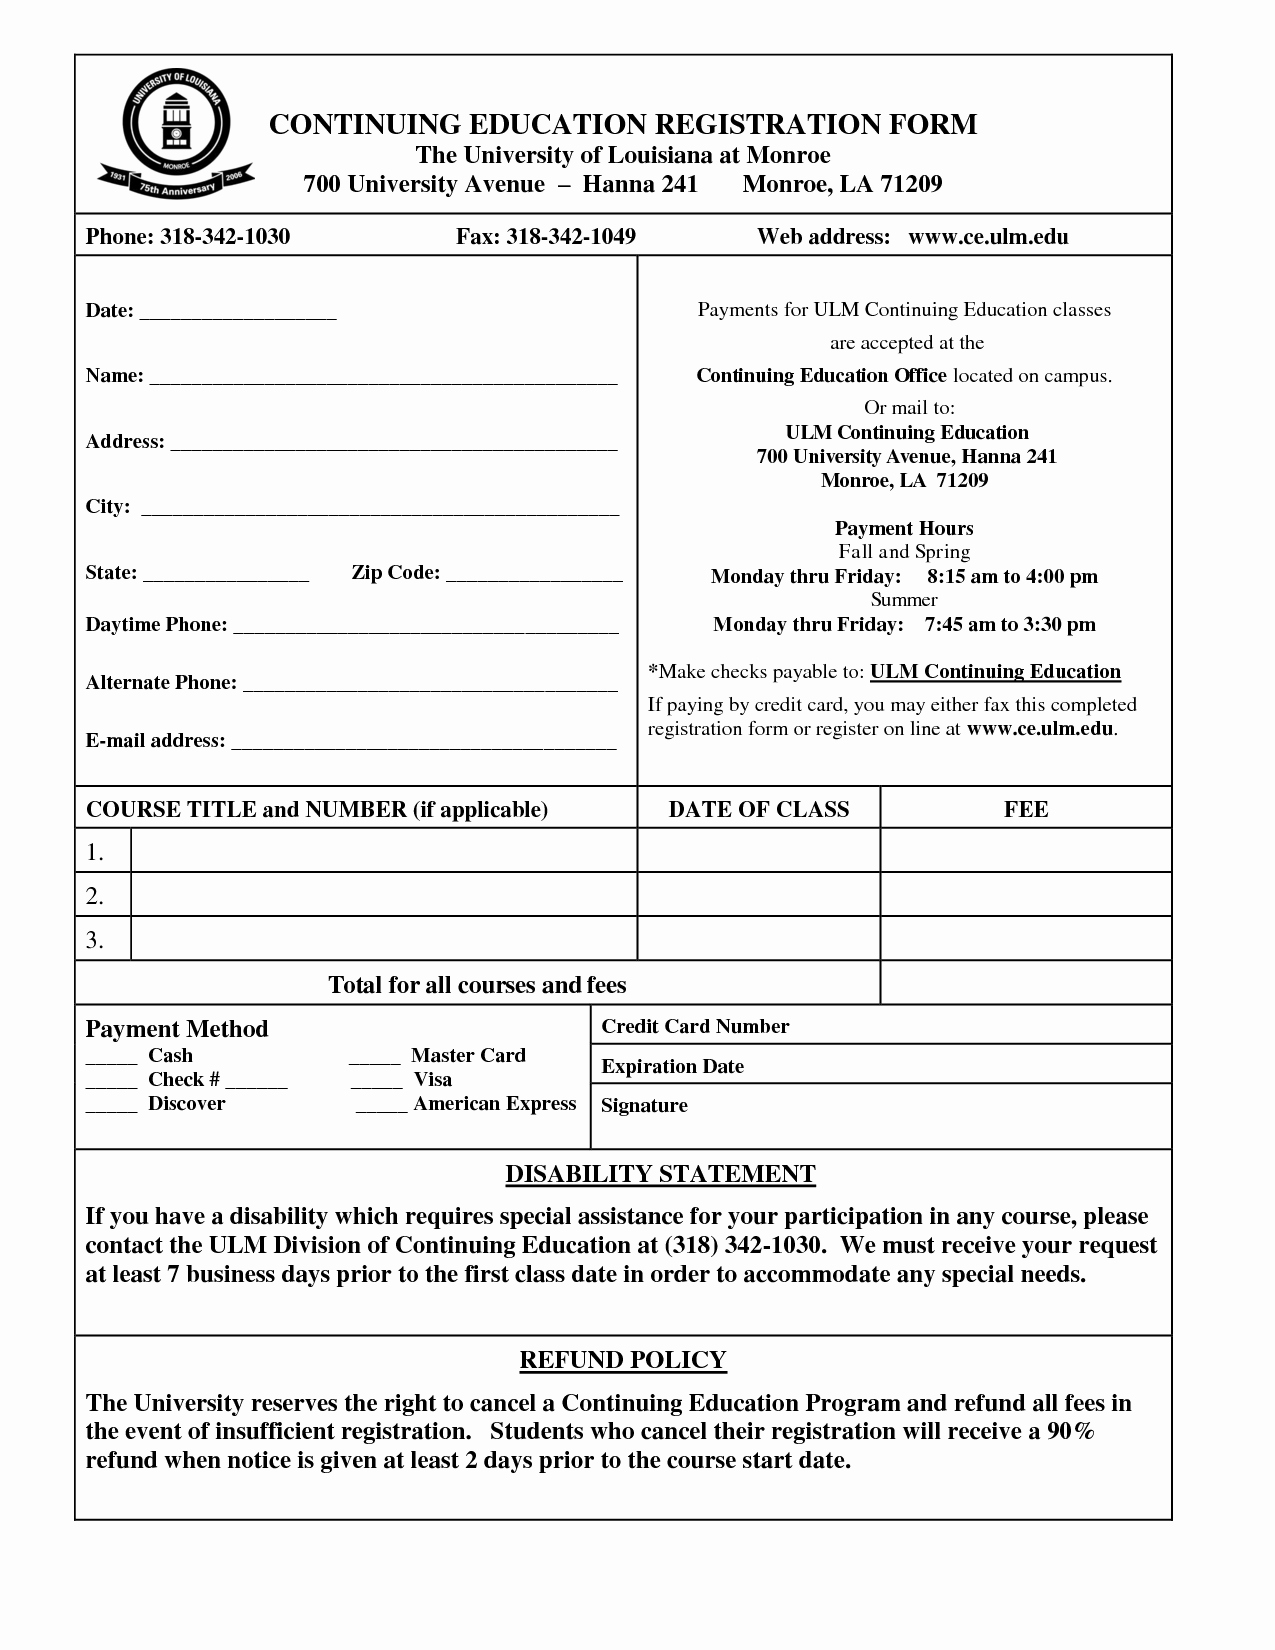 Registration form Template Word Inspirational Registration form Template Word